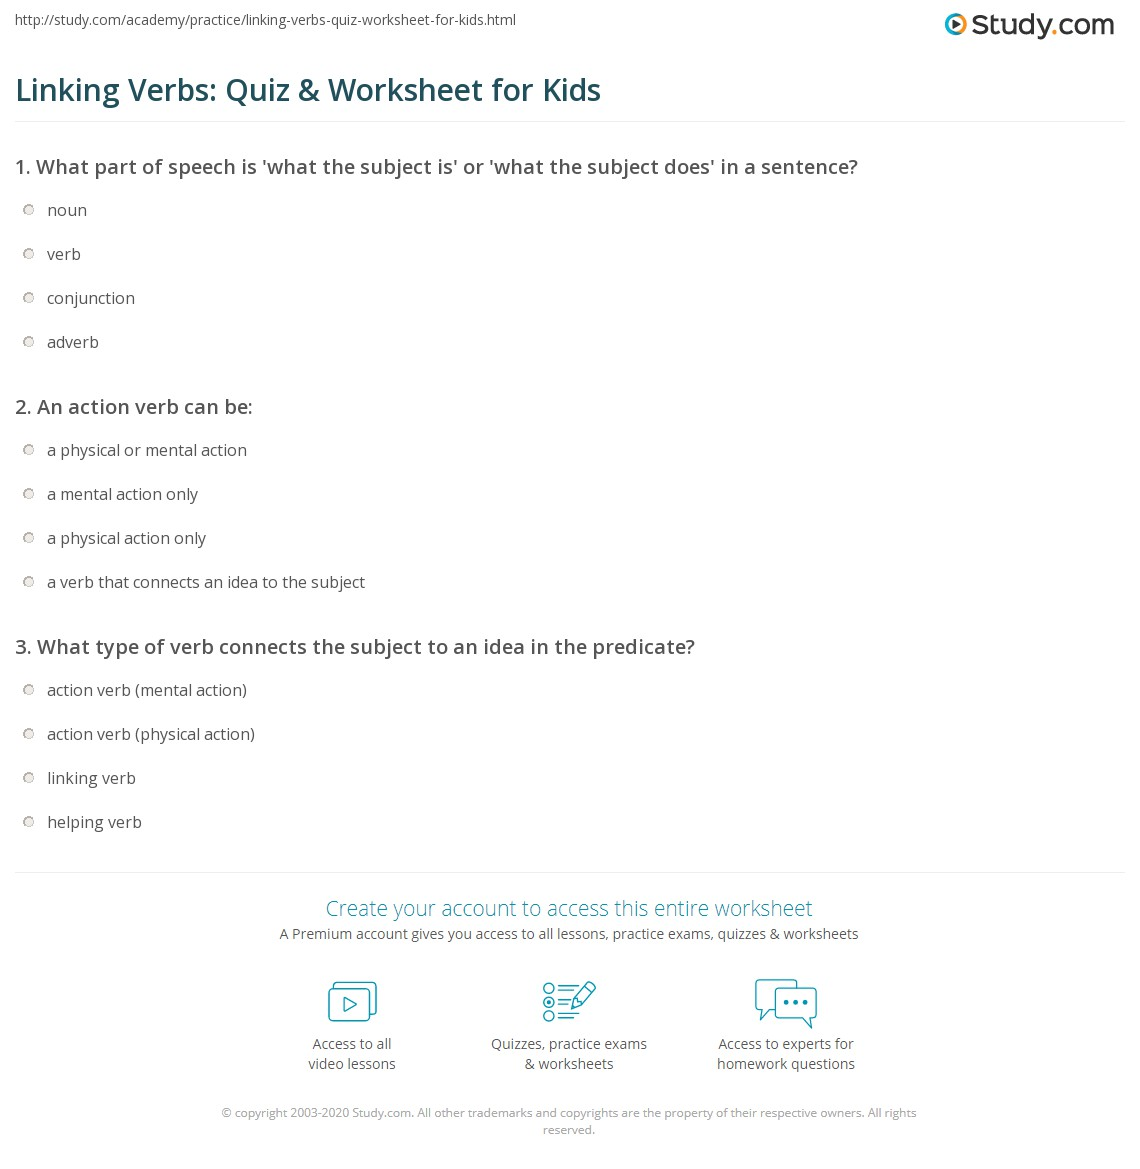 Print Linking Verbs: Lesson for Kids Worksheet